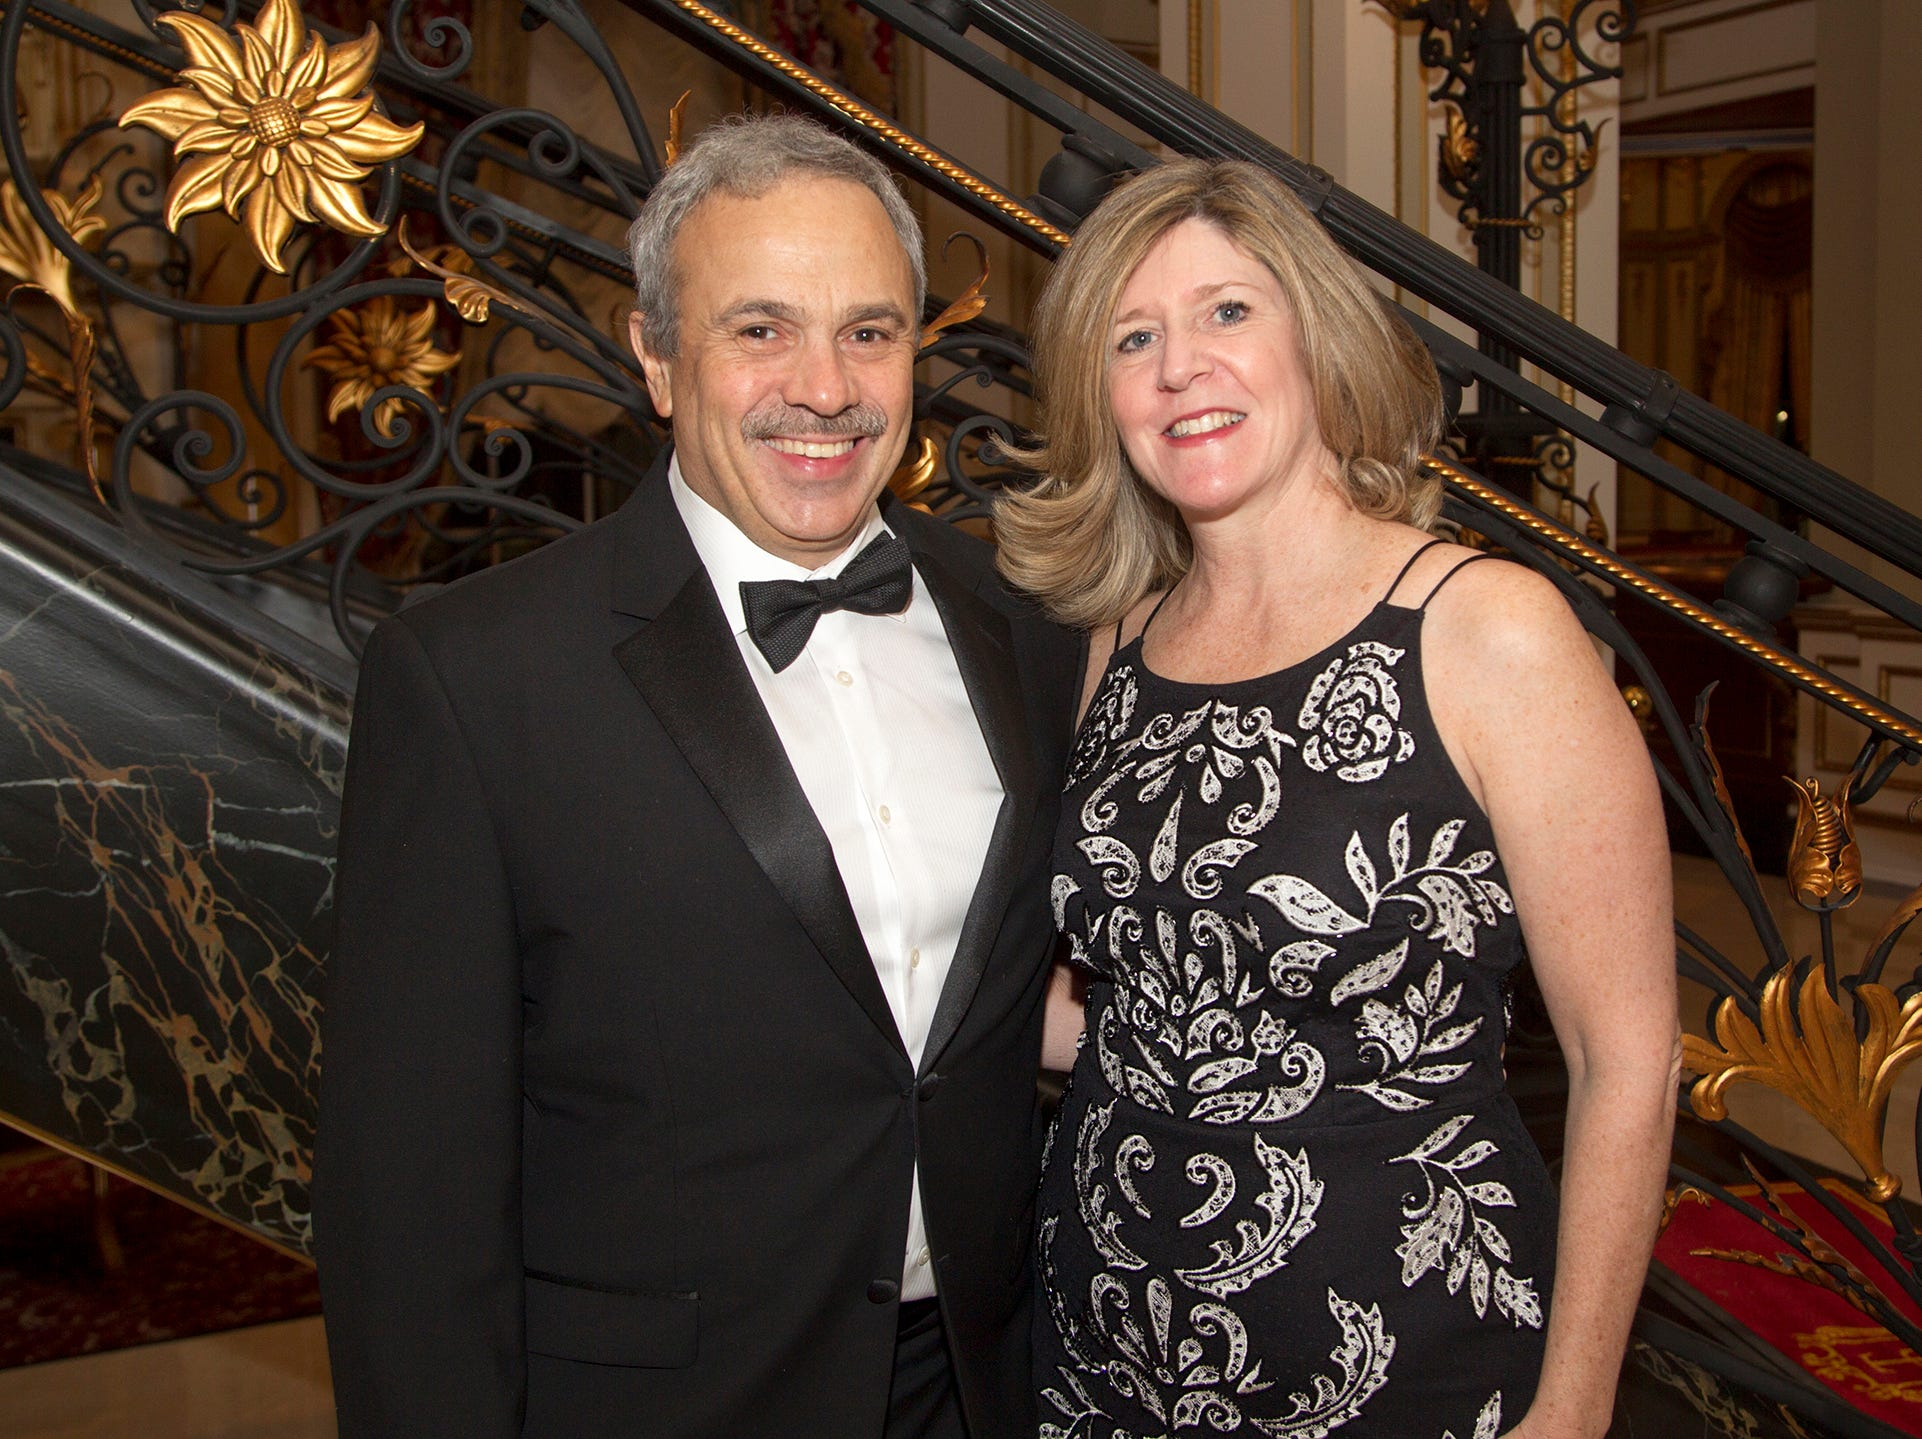 Bruce and Sally Felsenstein. The 72nd Annual Valley Ball gala at The Legacy Castle in Pompton Plains. 11/16/2018